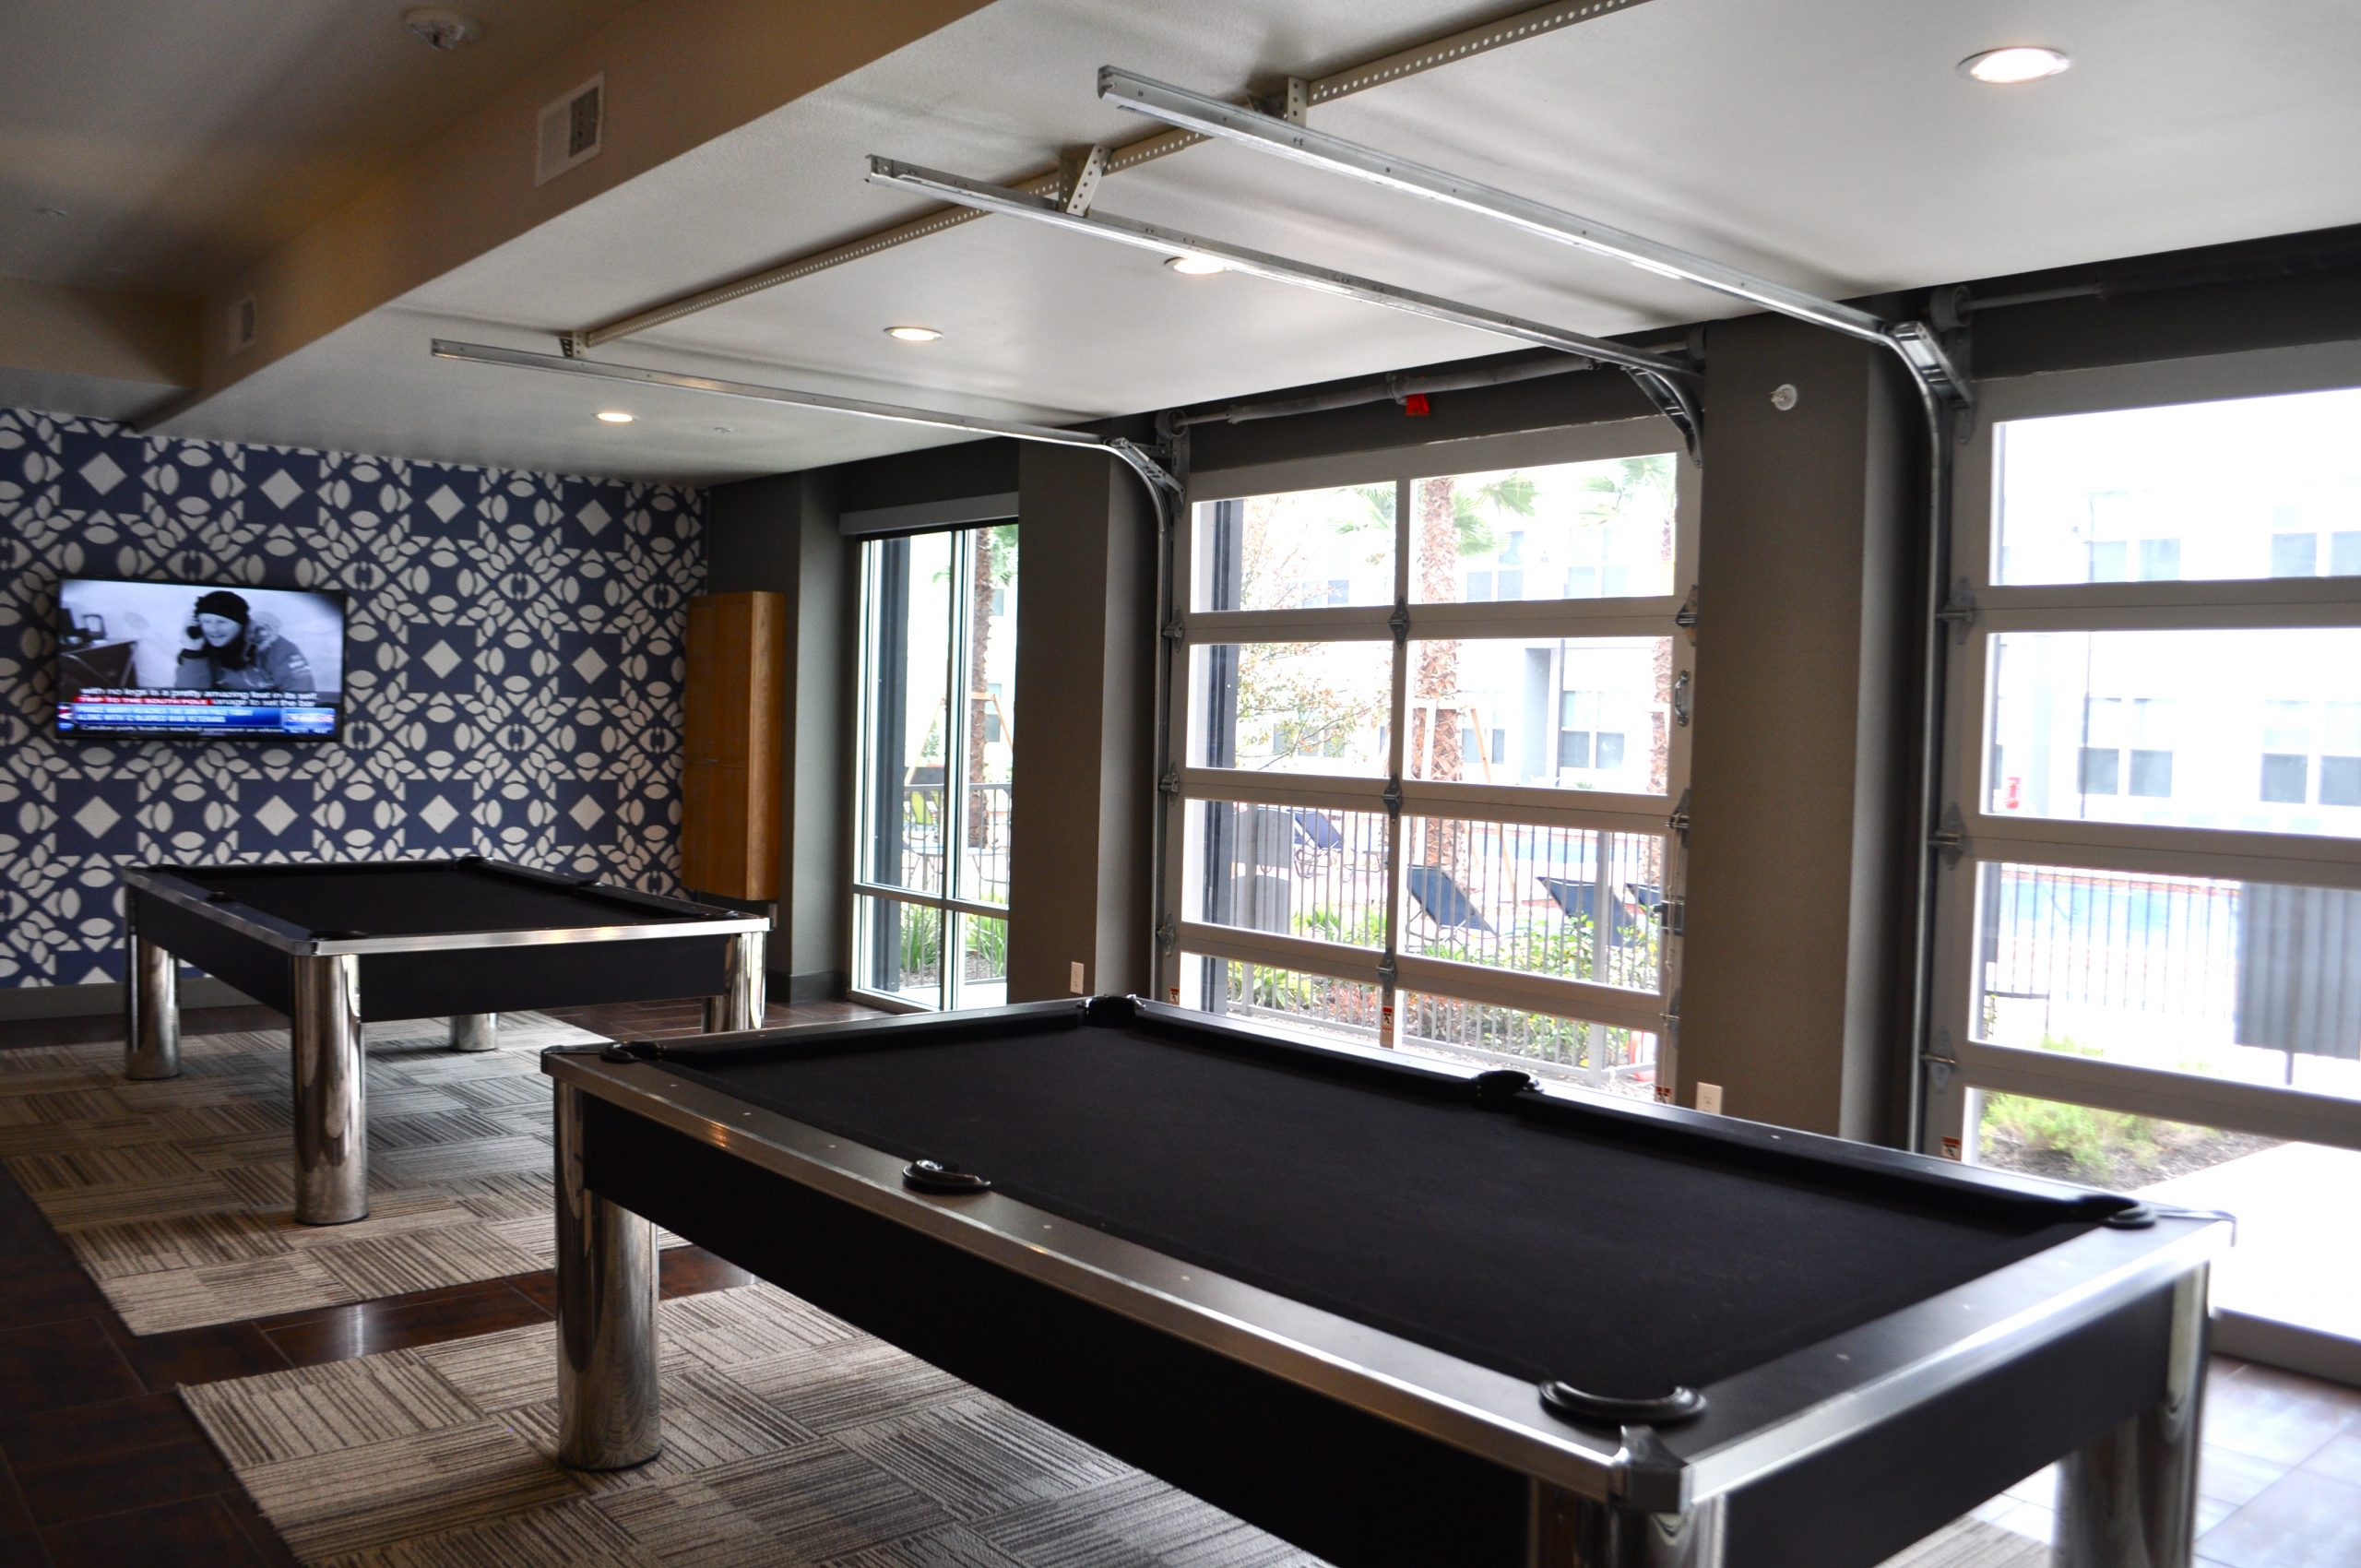 Pool tables at Tobin Lofts. The recreation area utilizes a former gas station/mechanic shop (hence the garage doors). Photo by Iris Dimmick.